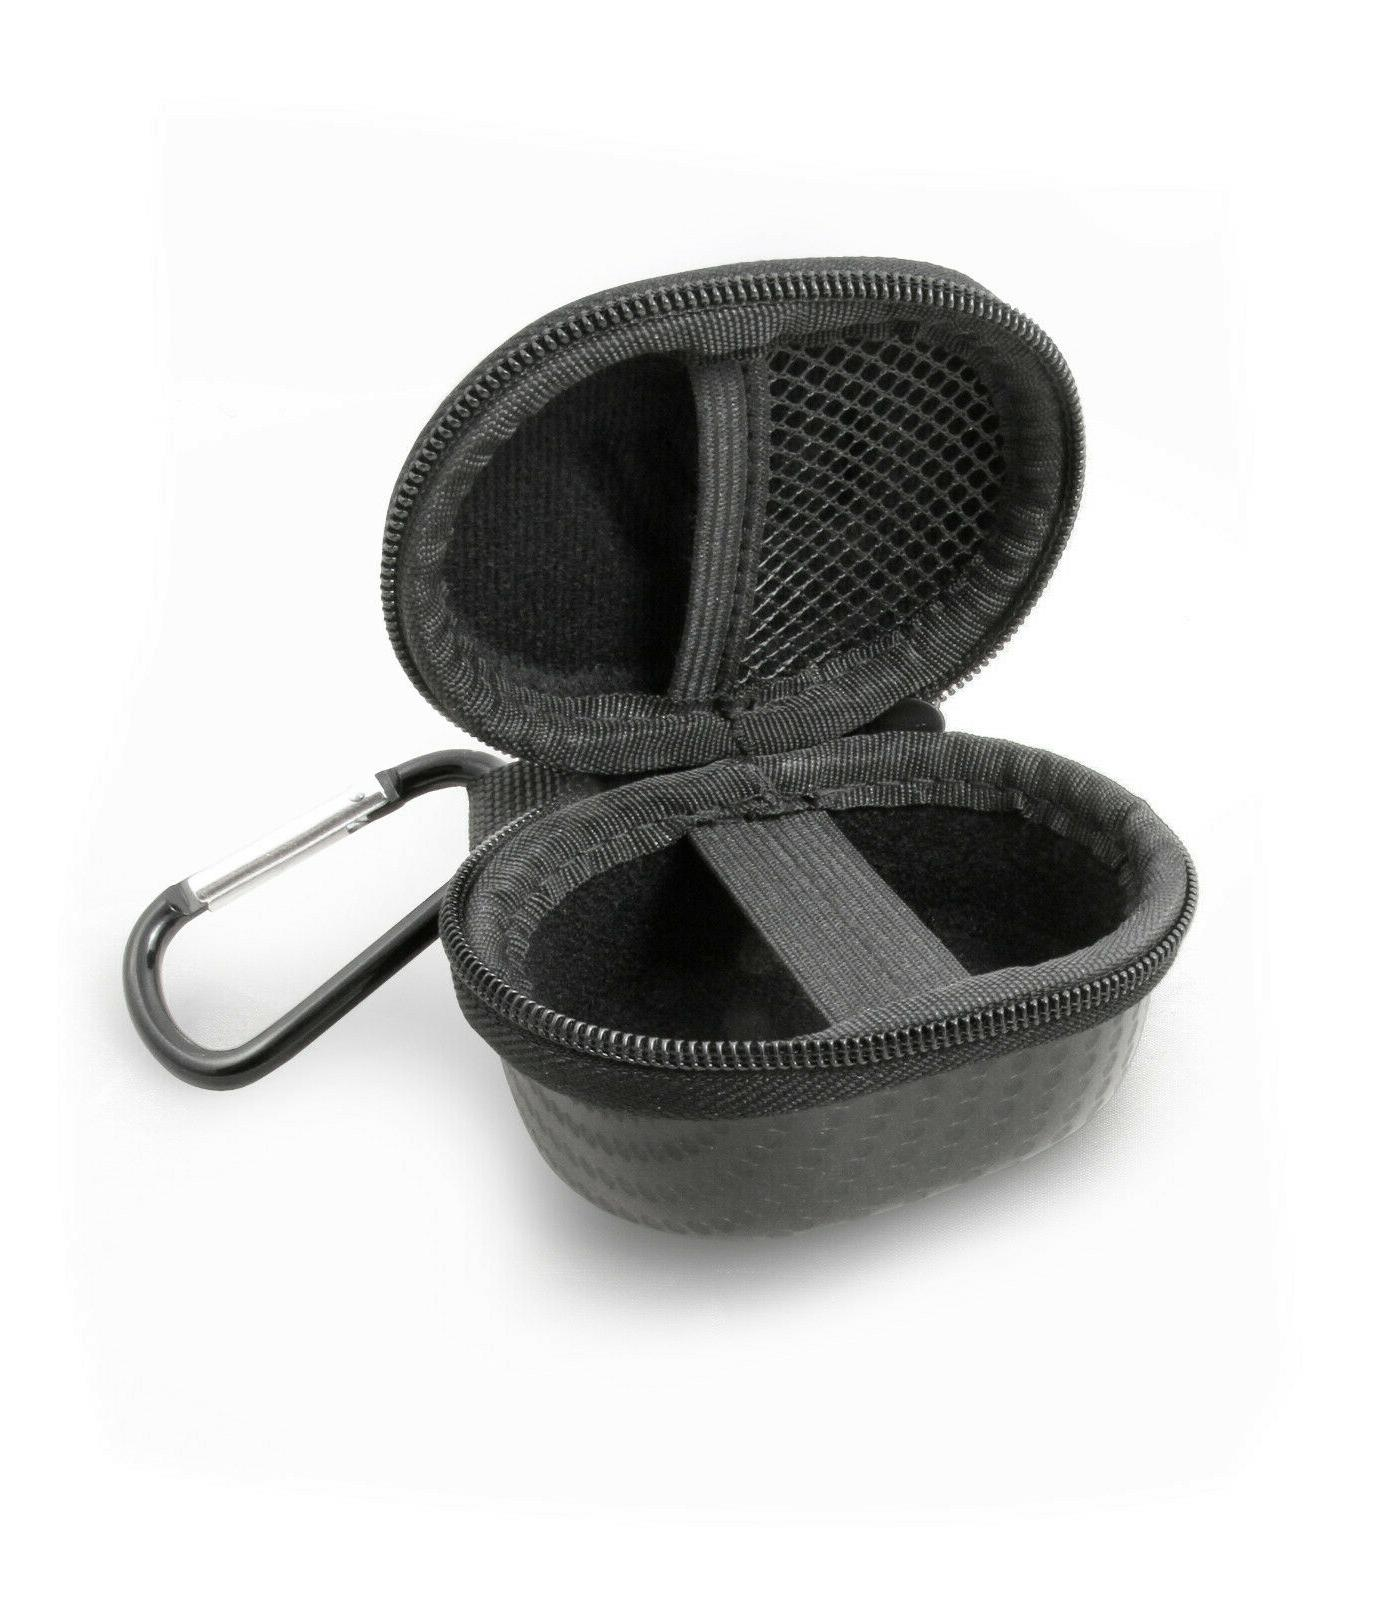 black apple airpods pro case for airpods